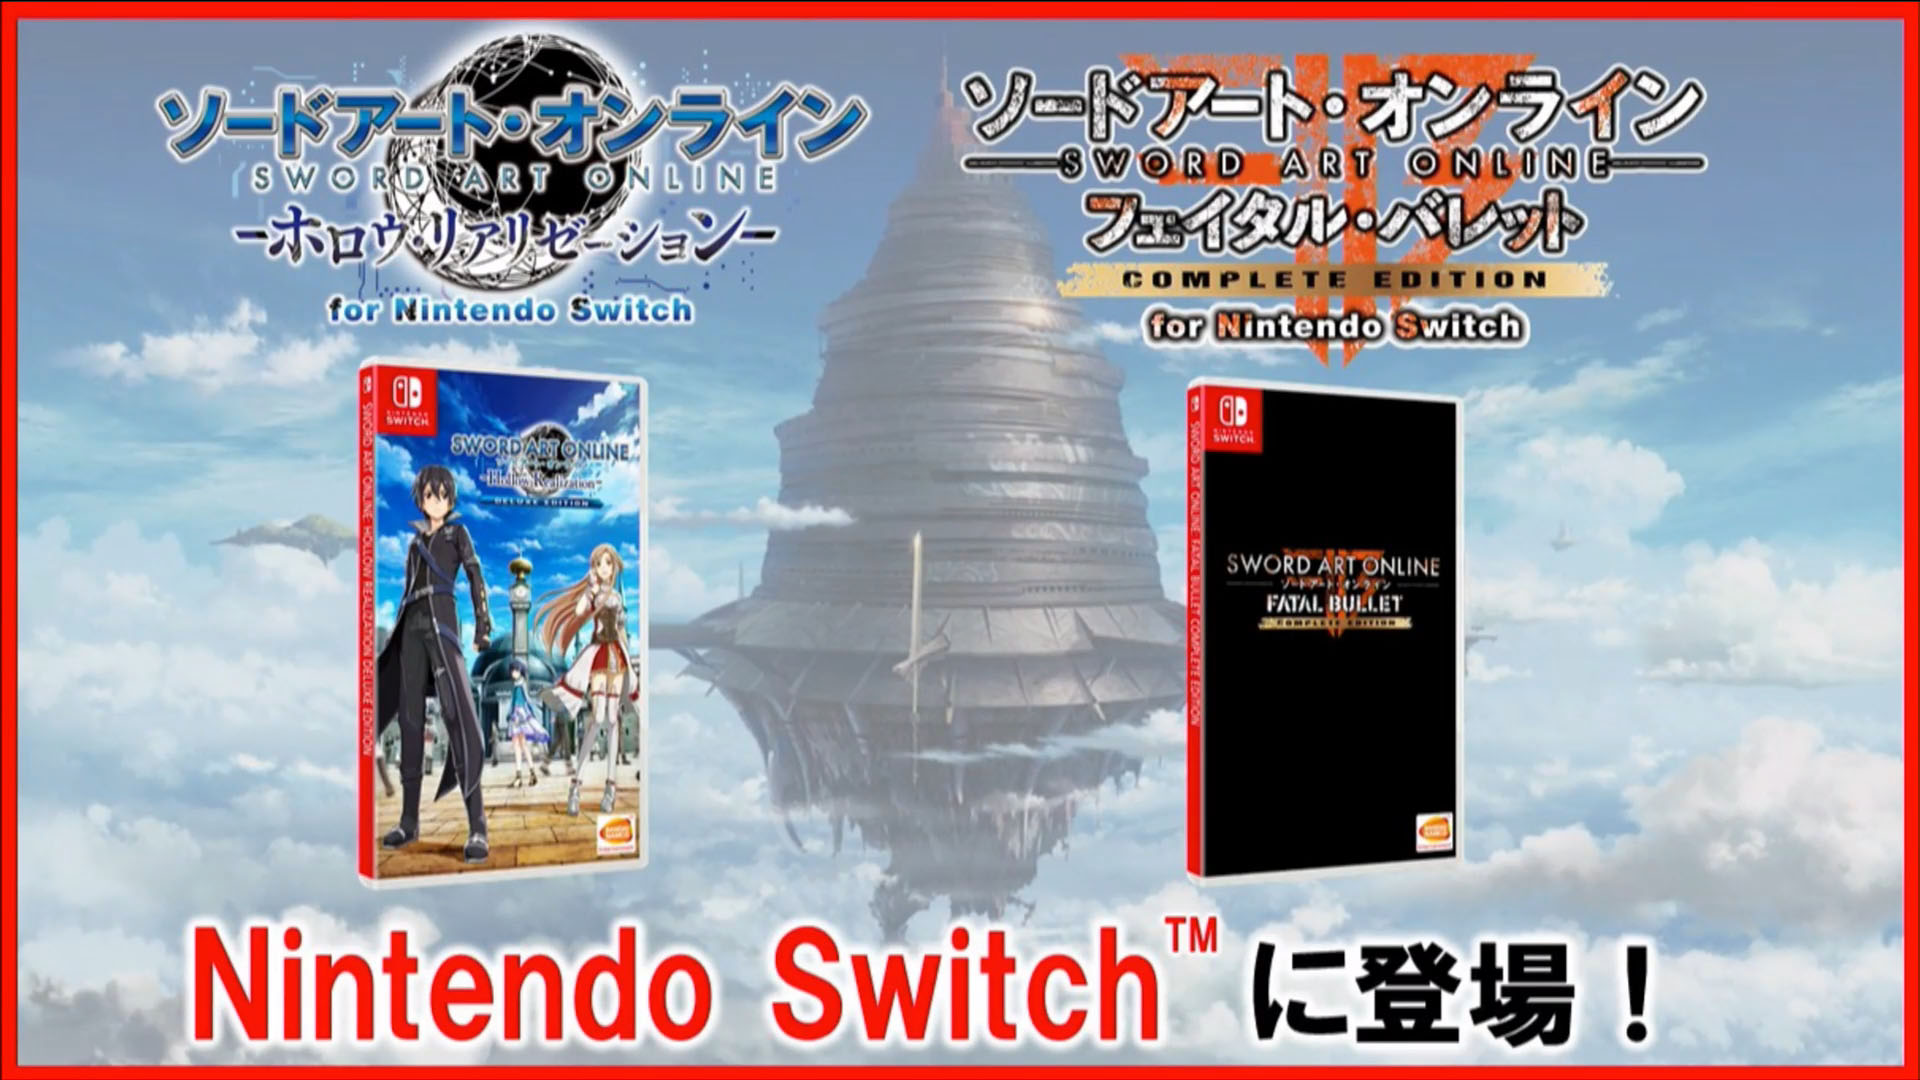 SAO-News_09-22-18_Switch.jpg